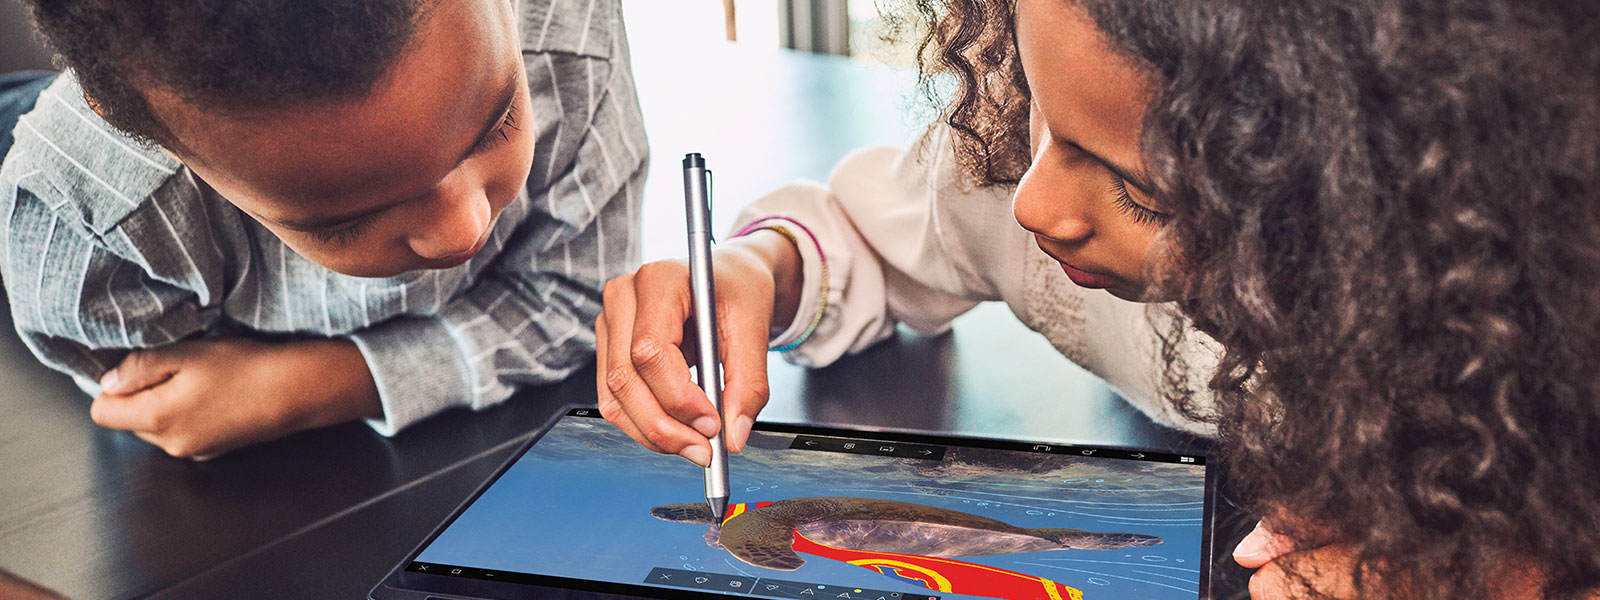 Kids drawing with Windows ink